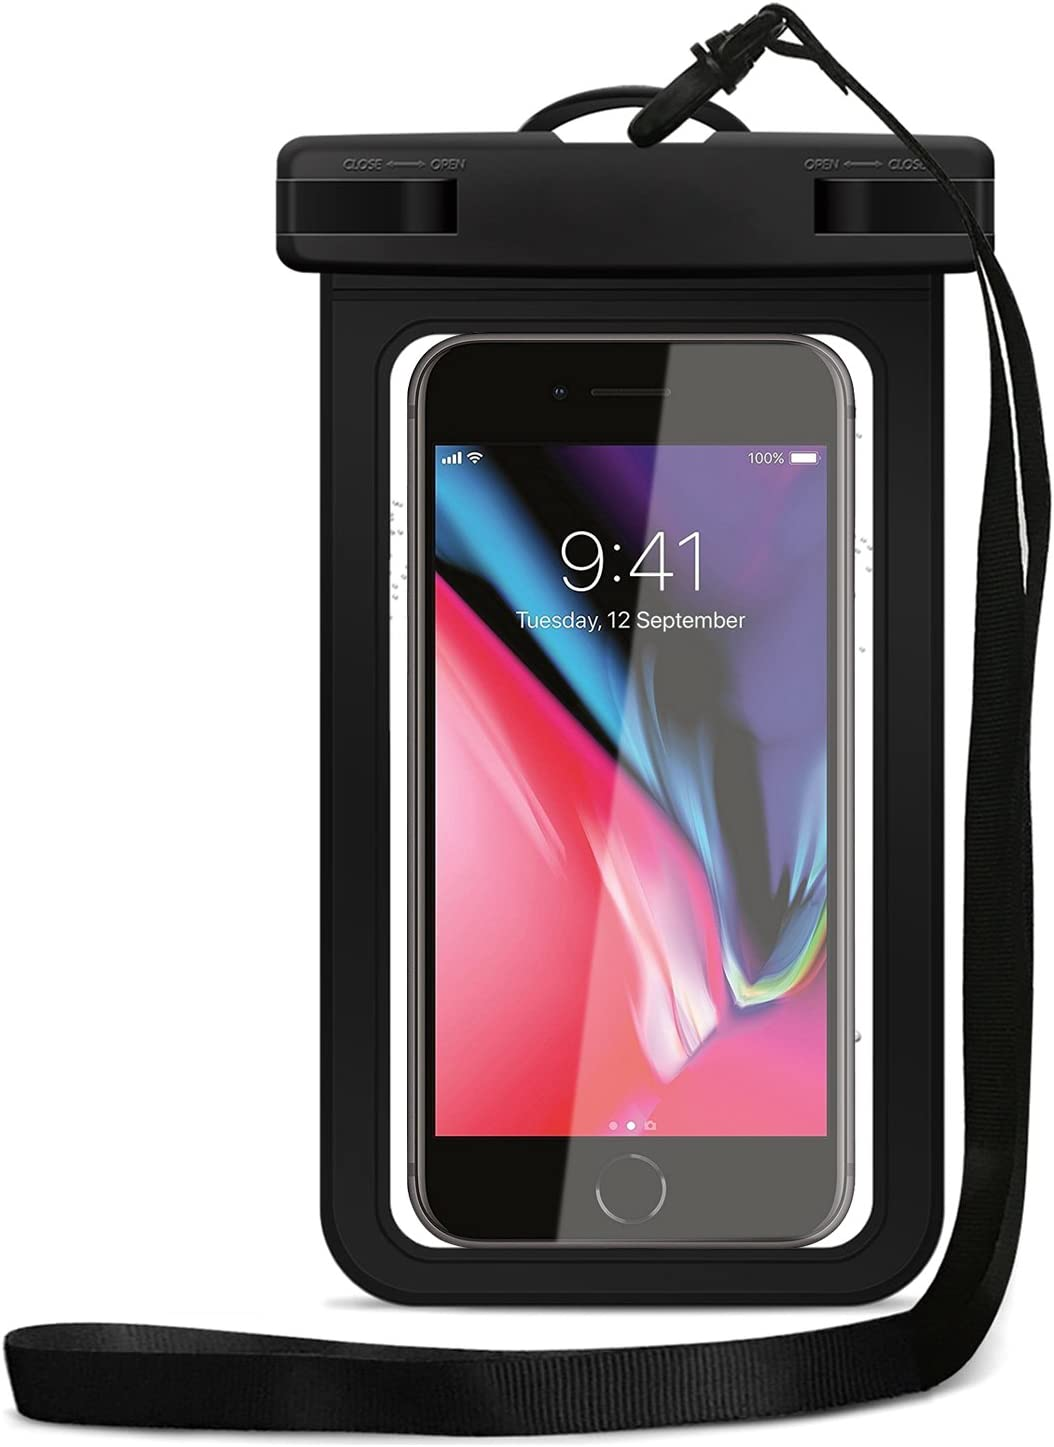 Cloudio Universal Waterproof Case, IPX8 Cell Phone Dry Bag Pouch up to 6.2